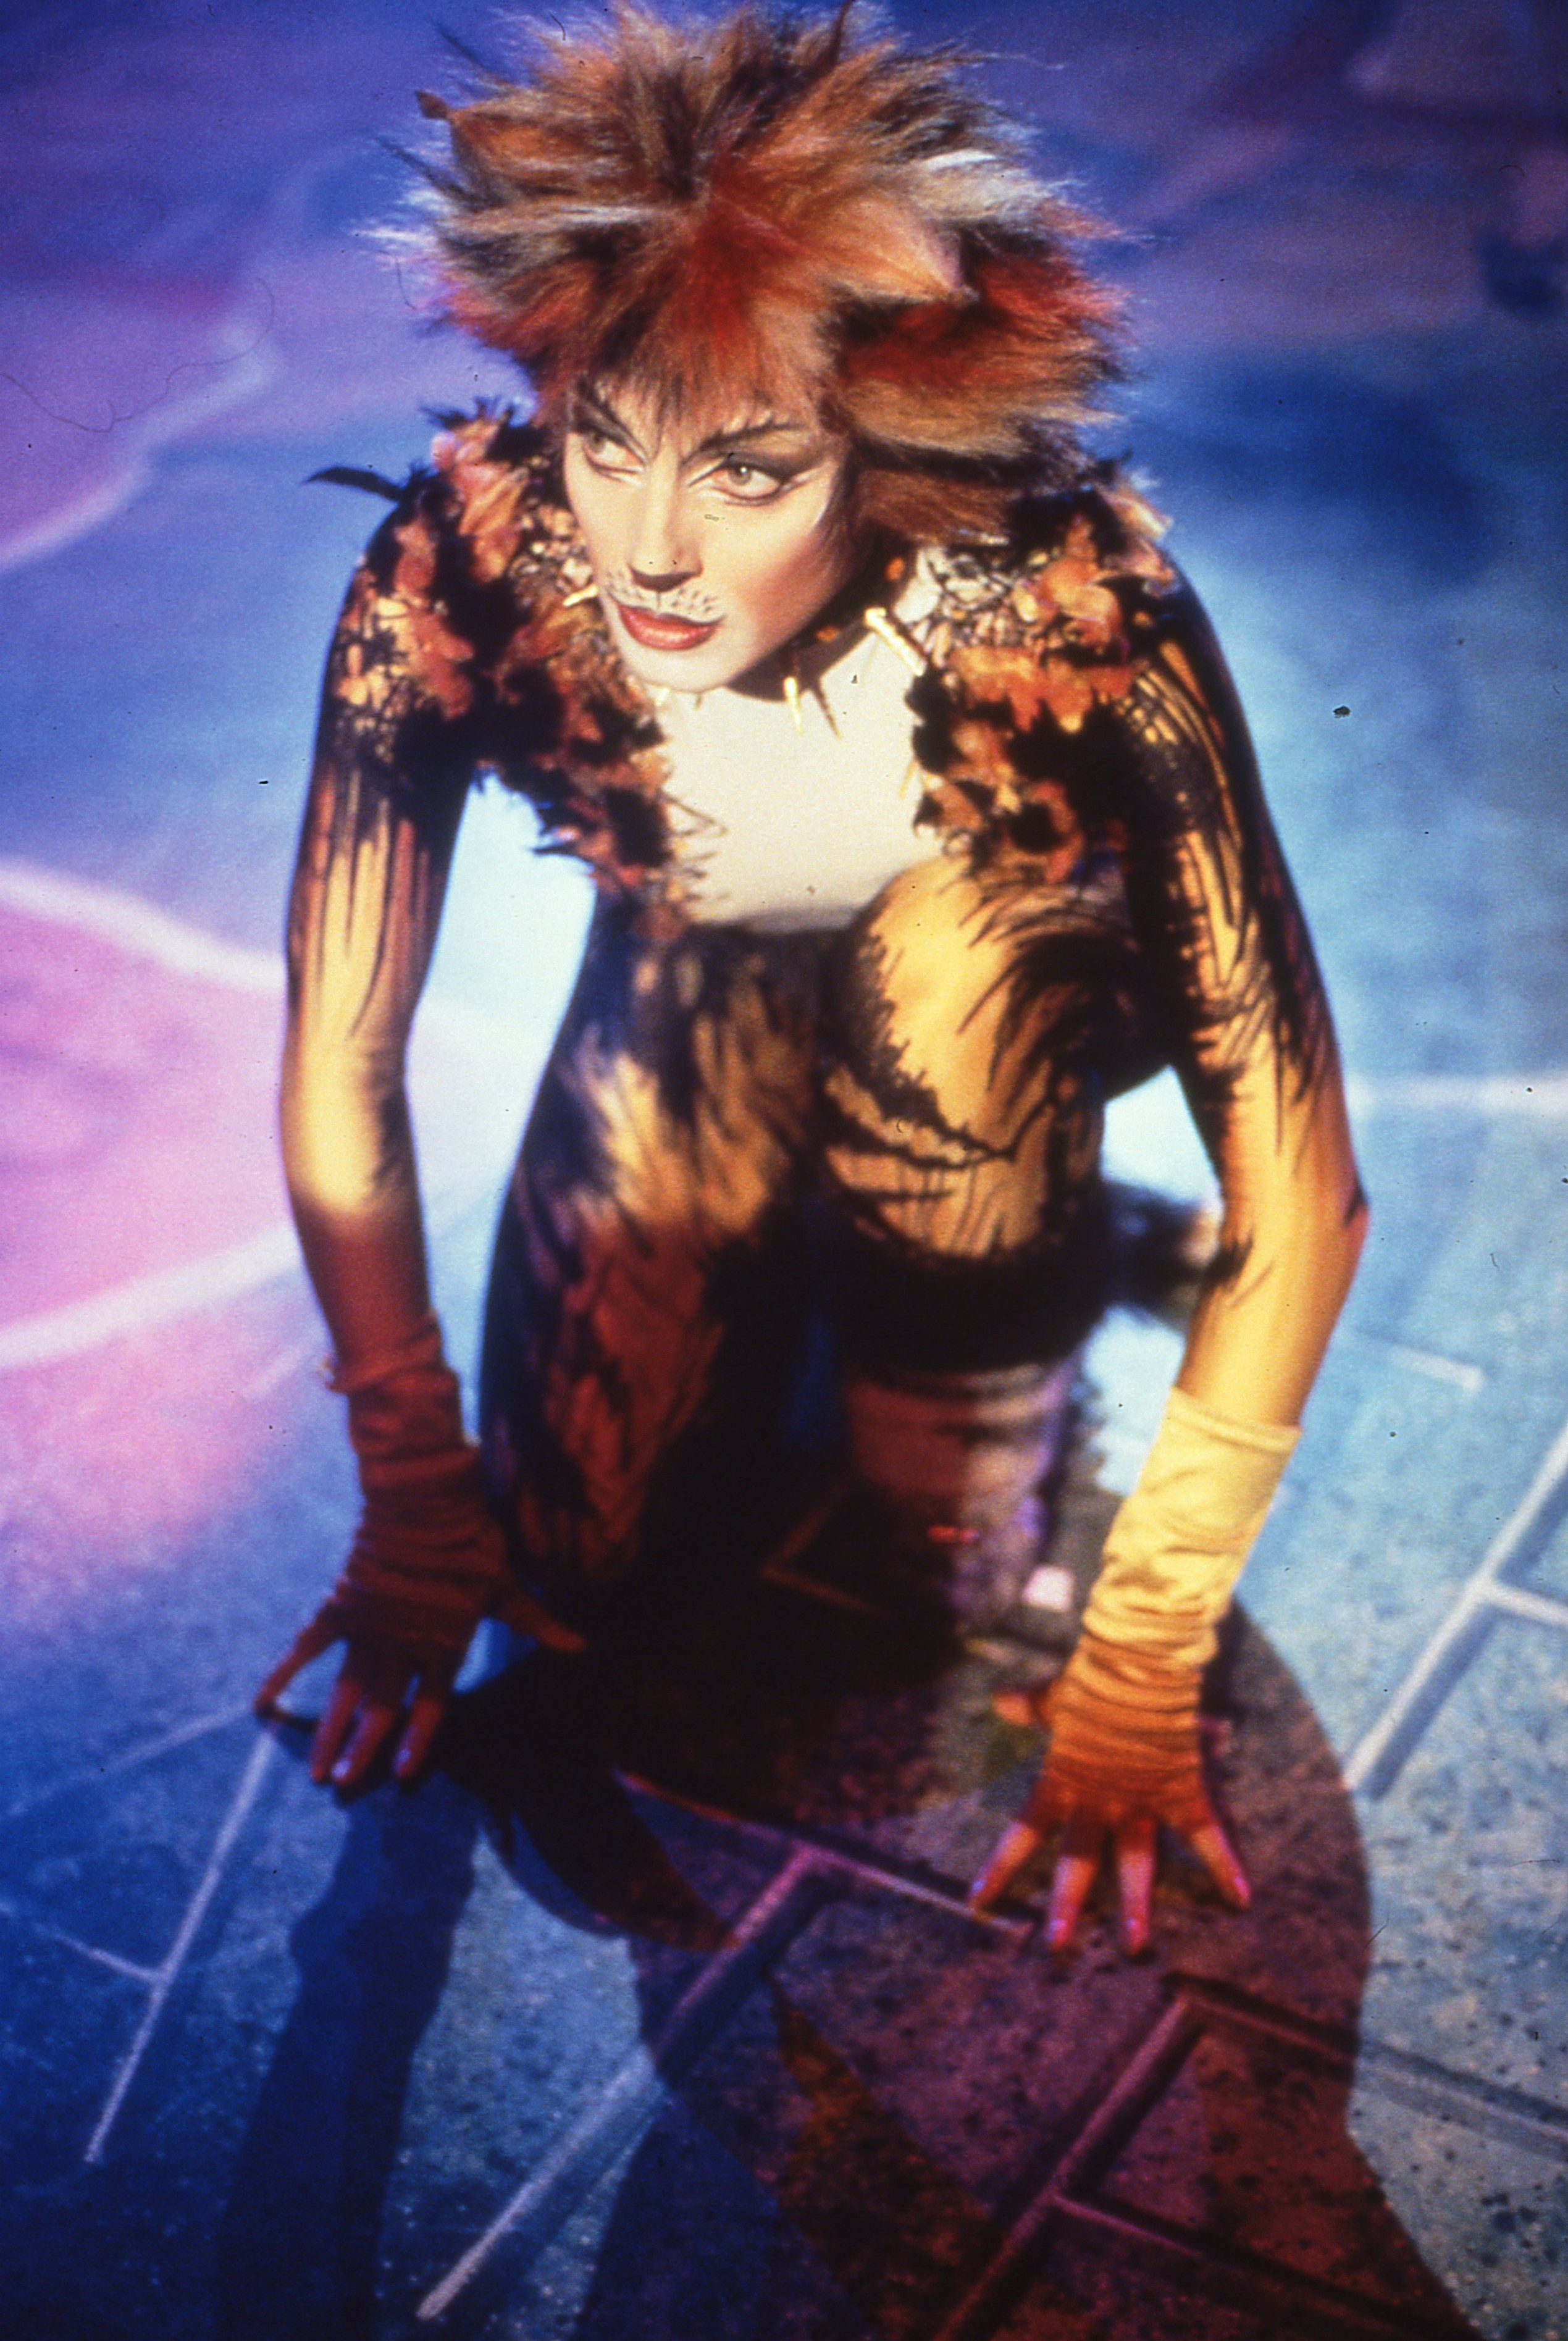 Cats On Screen Cats The Musical Jellicle Cats Cats Musical Musicals